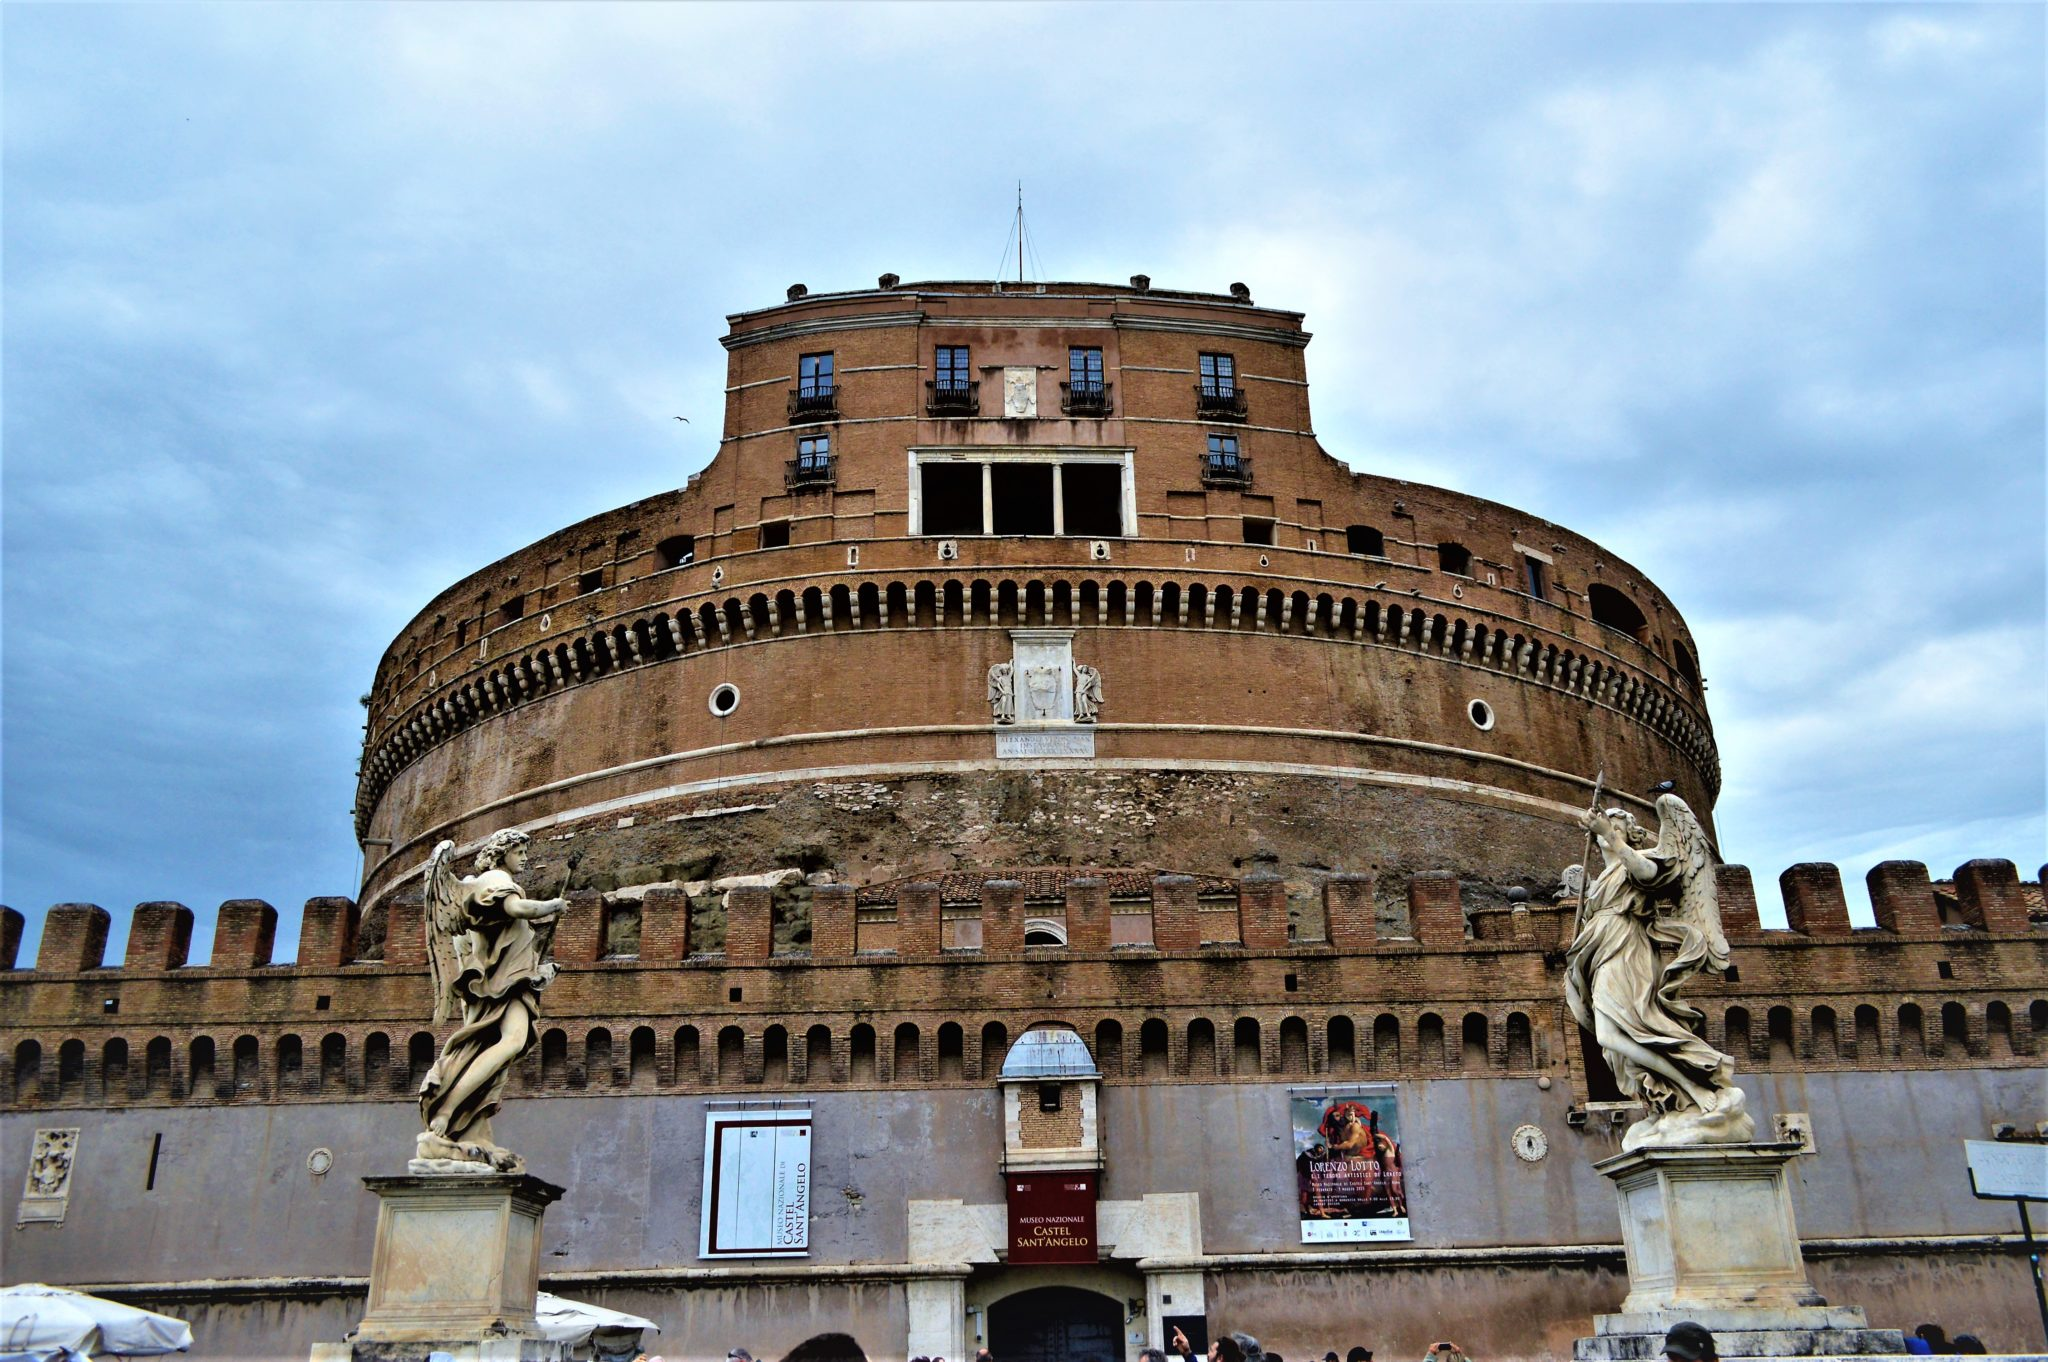 The Castel St'Angelo, Rome, Italy